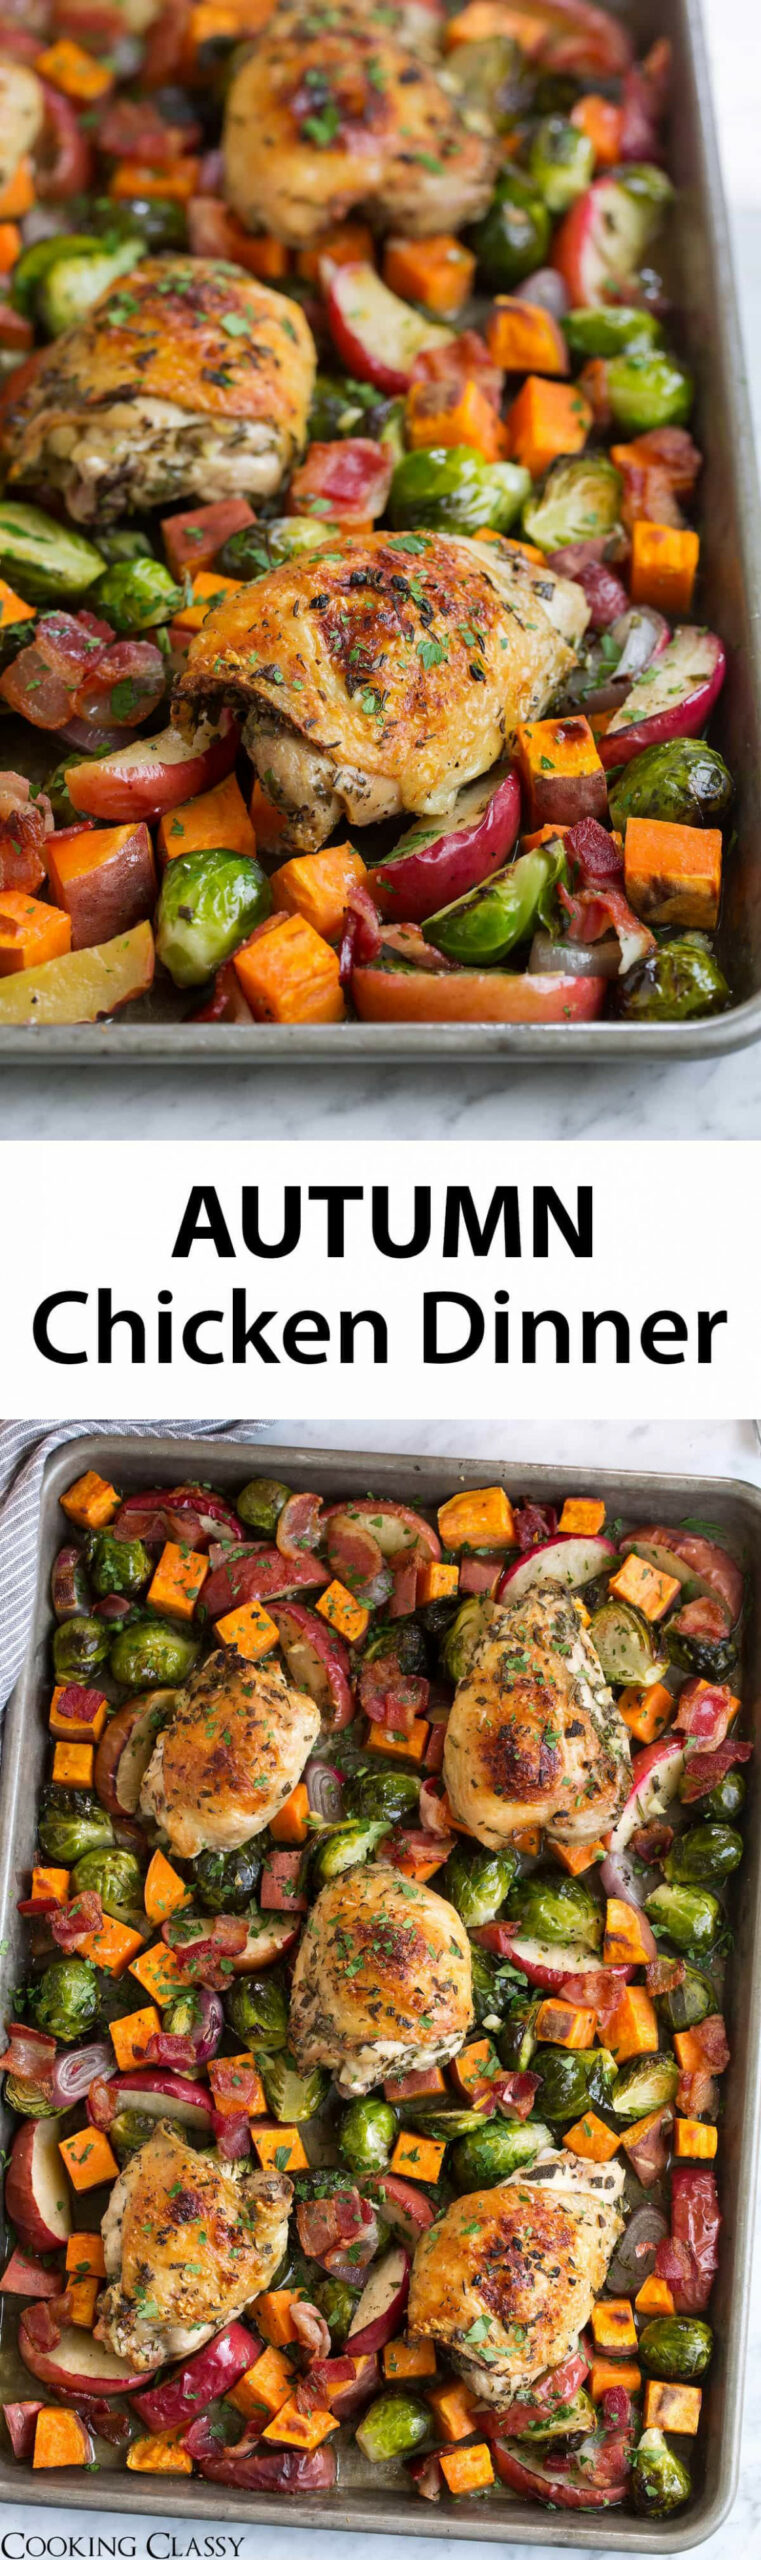 One Pan Autumn Chicken Dinner - one of my favorite fall ..